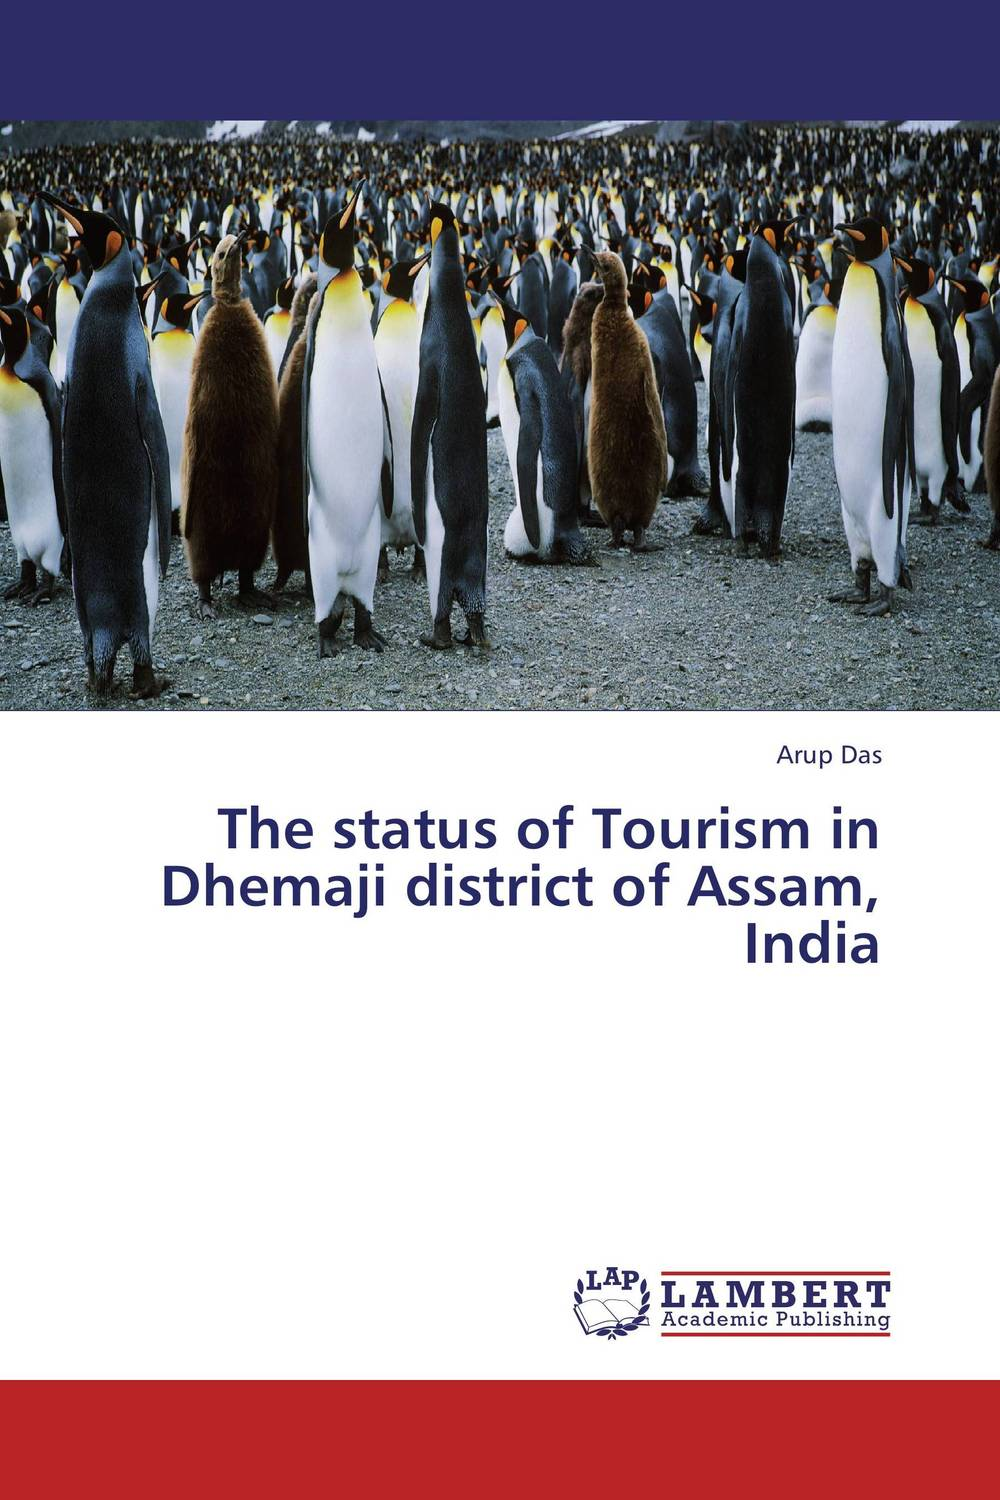 The status of Tourism in Dhemaji district of Assam, India виниловая пластинка grateful dead the grateful dead 50th anniversary